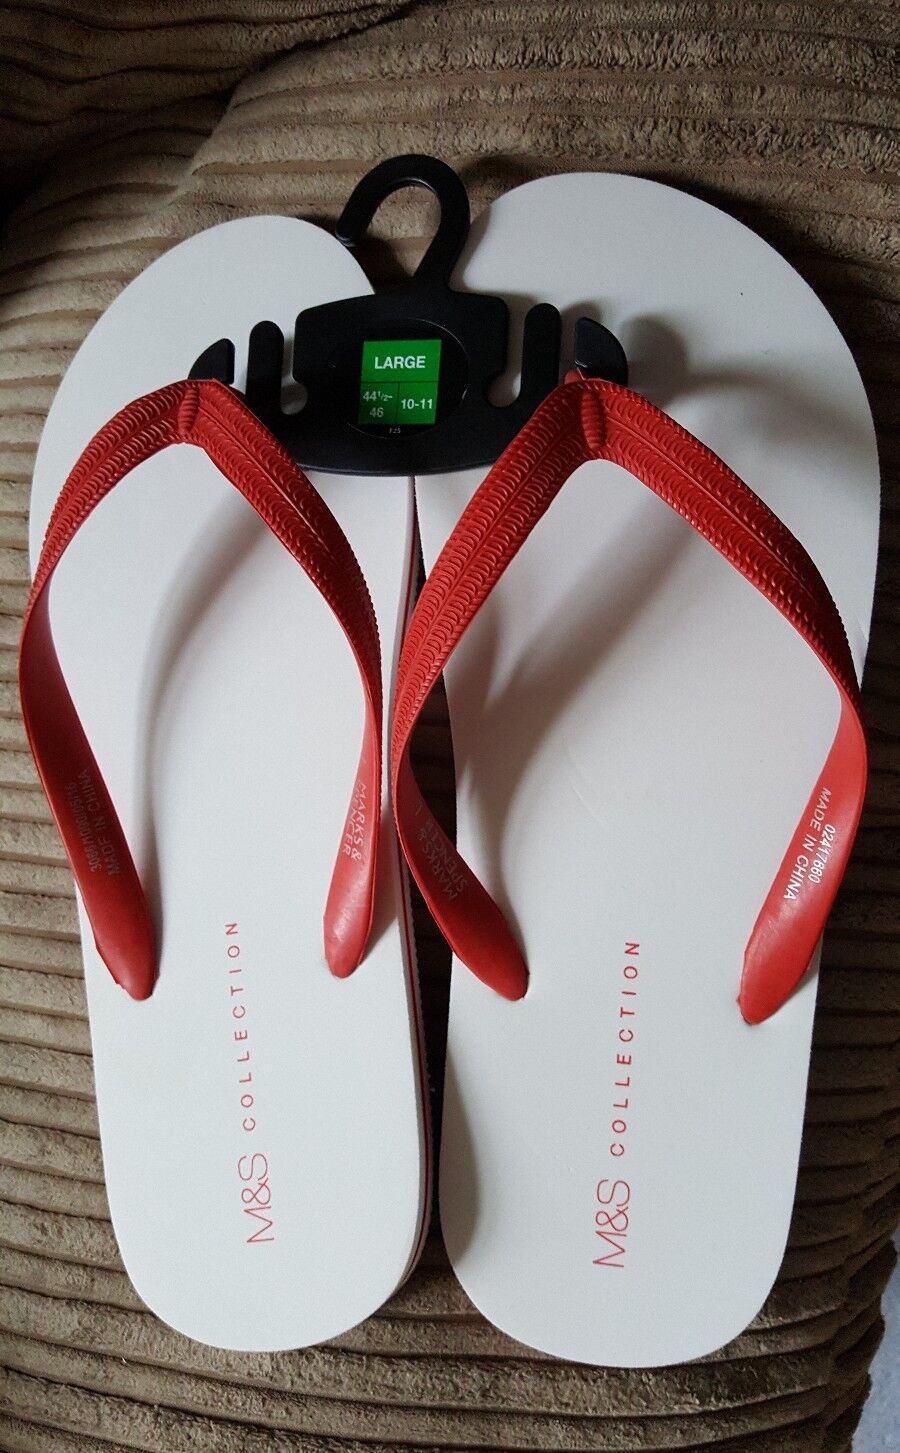 M&S MARKS AND SPENCER COLLECTION MENS FLIP FLOPS WHITE/ RED SIZE LARGE 10-11